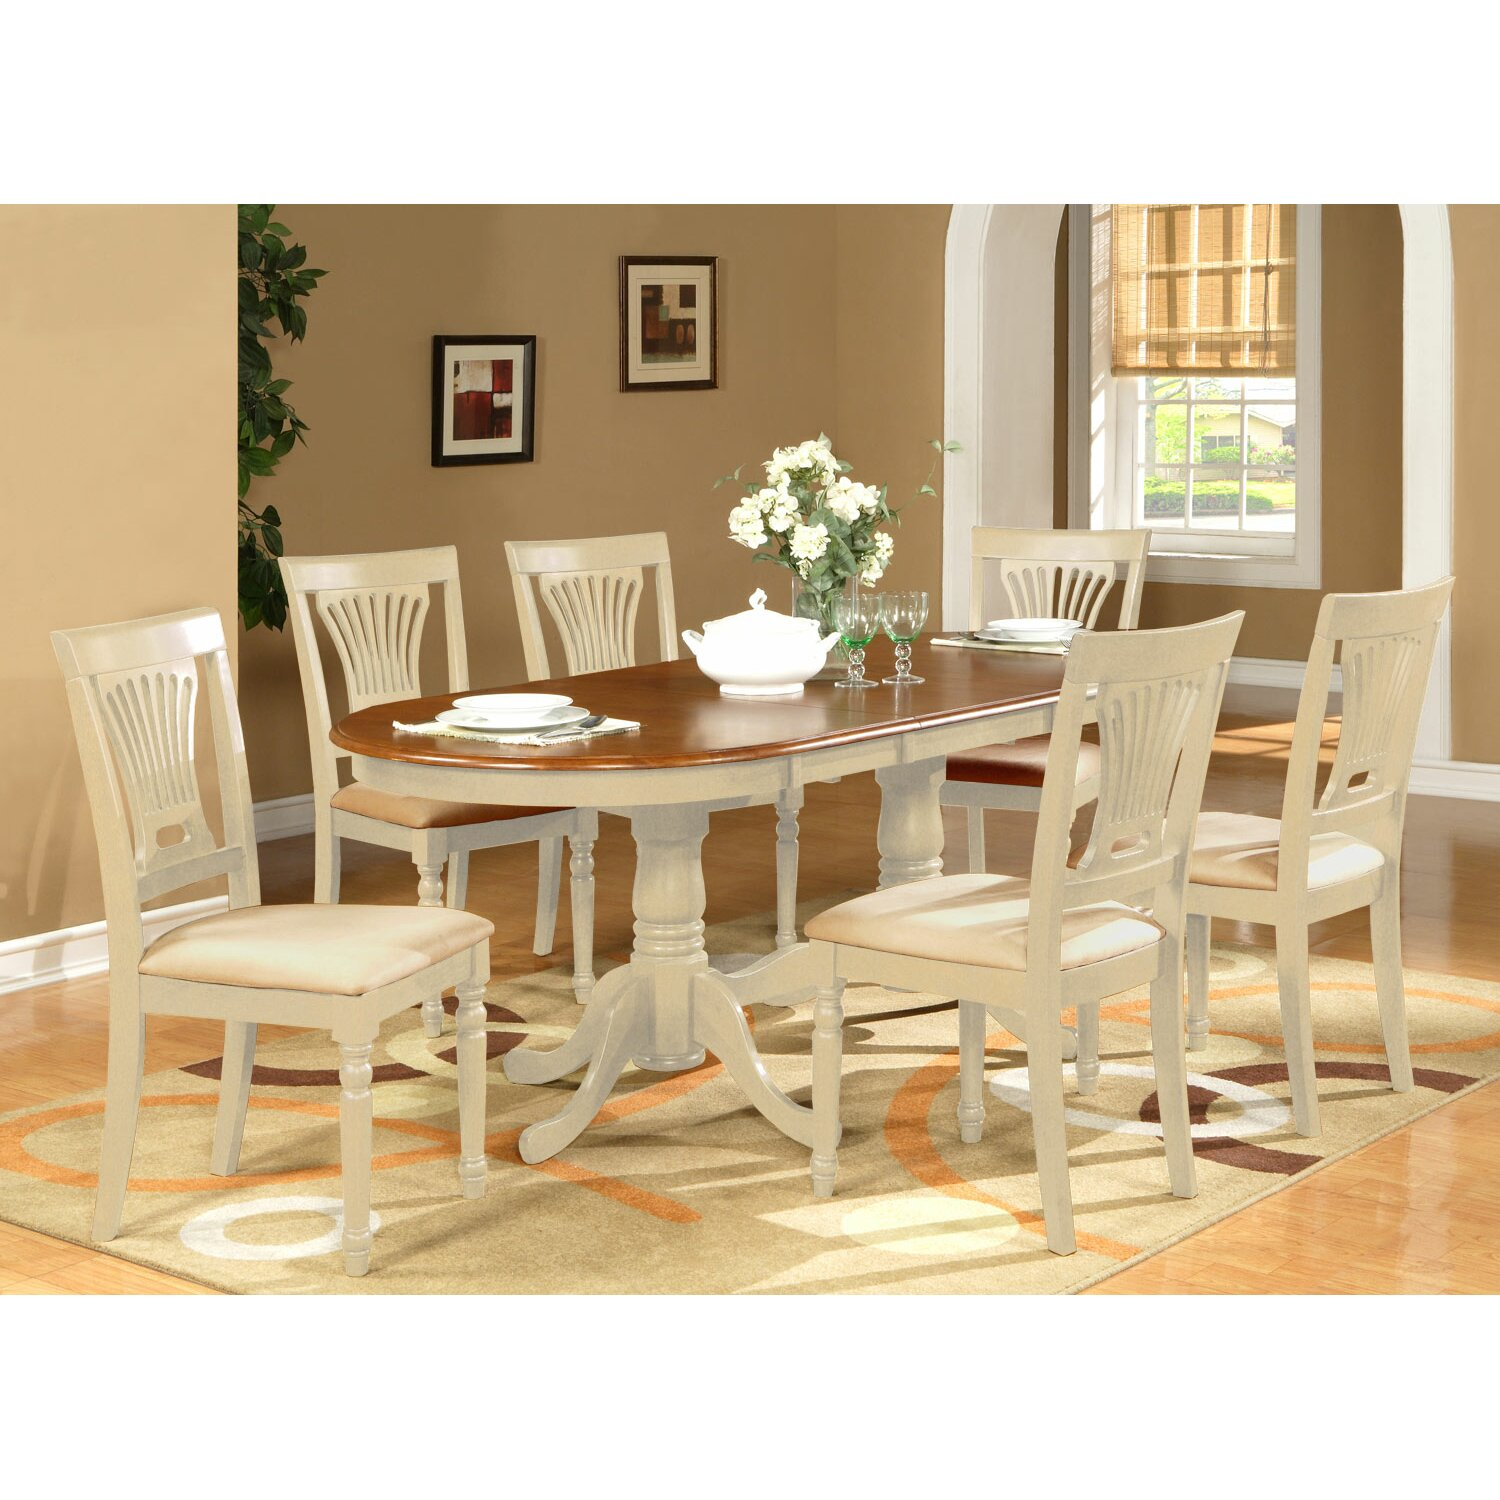 Darby home co germantown 7 piece dining set reviews for 2 piece dining room set